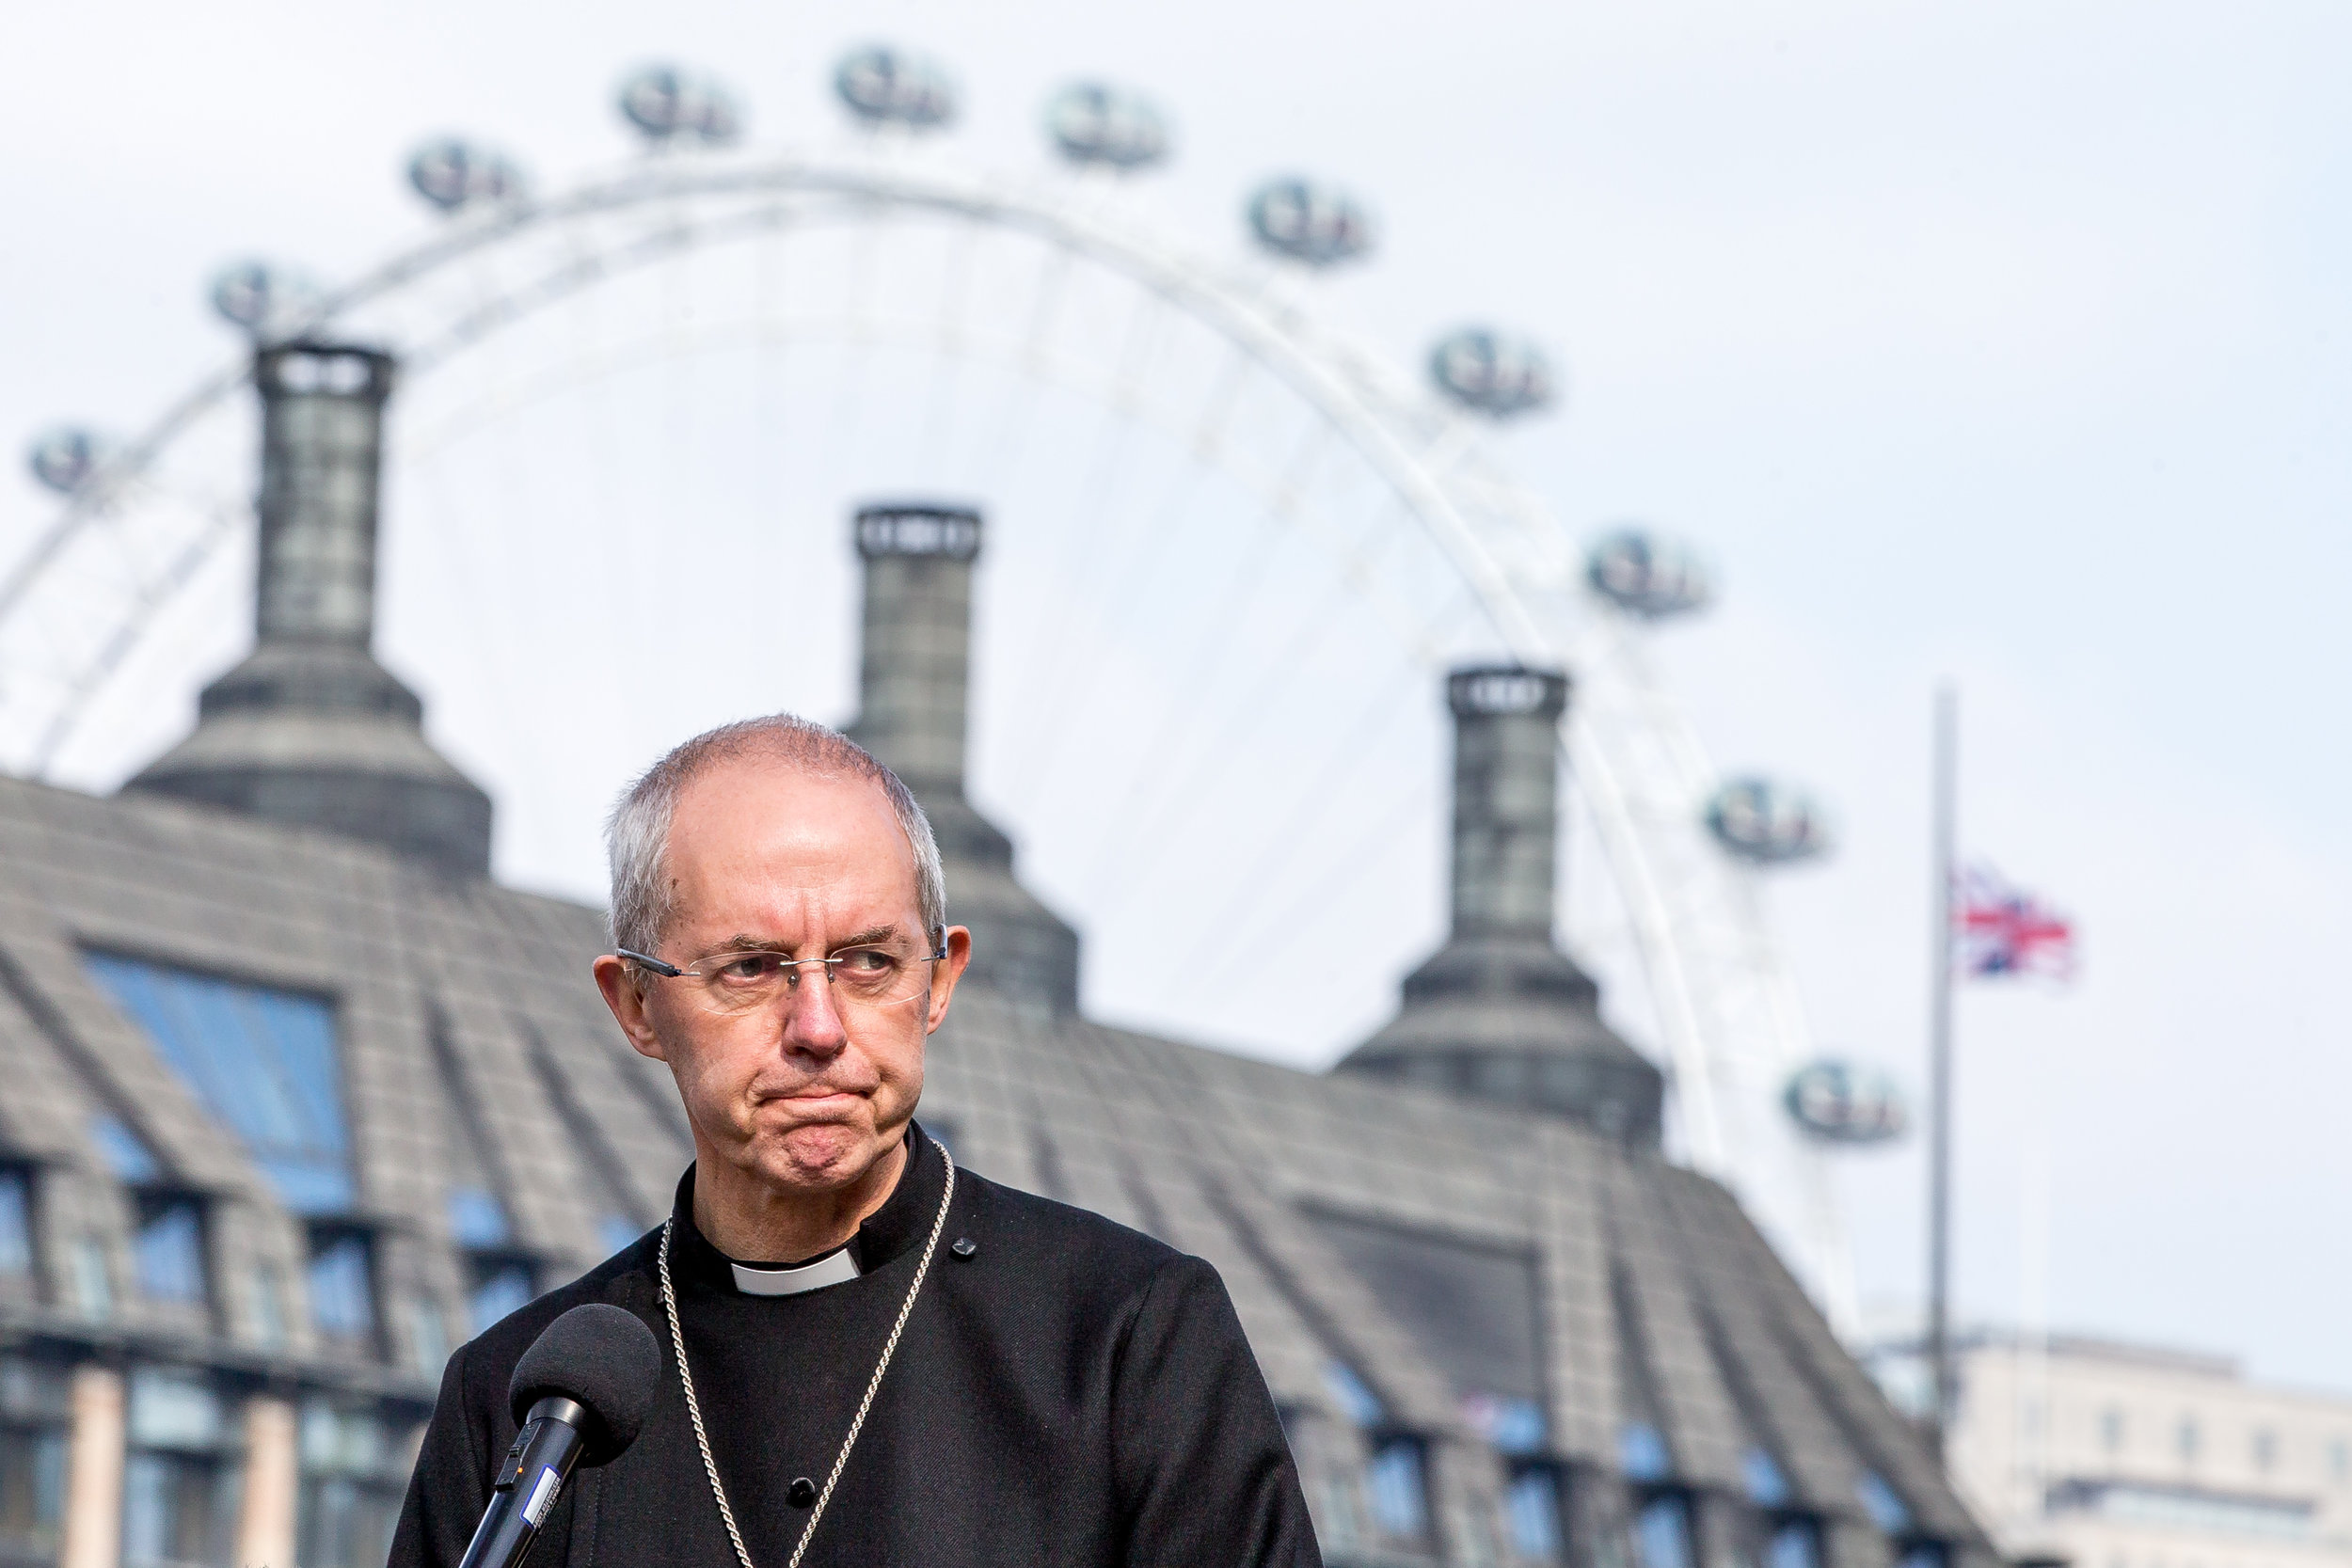 Faith leaders came together for a vigil and held a one minute silence following the terror attack on Westminster on Wednesday (22March17). Justin Welby in photo